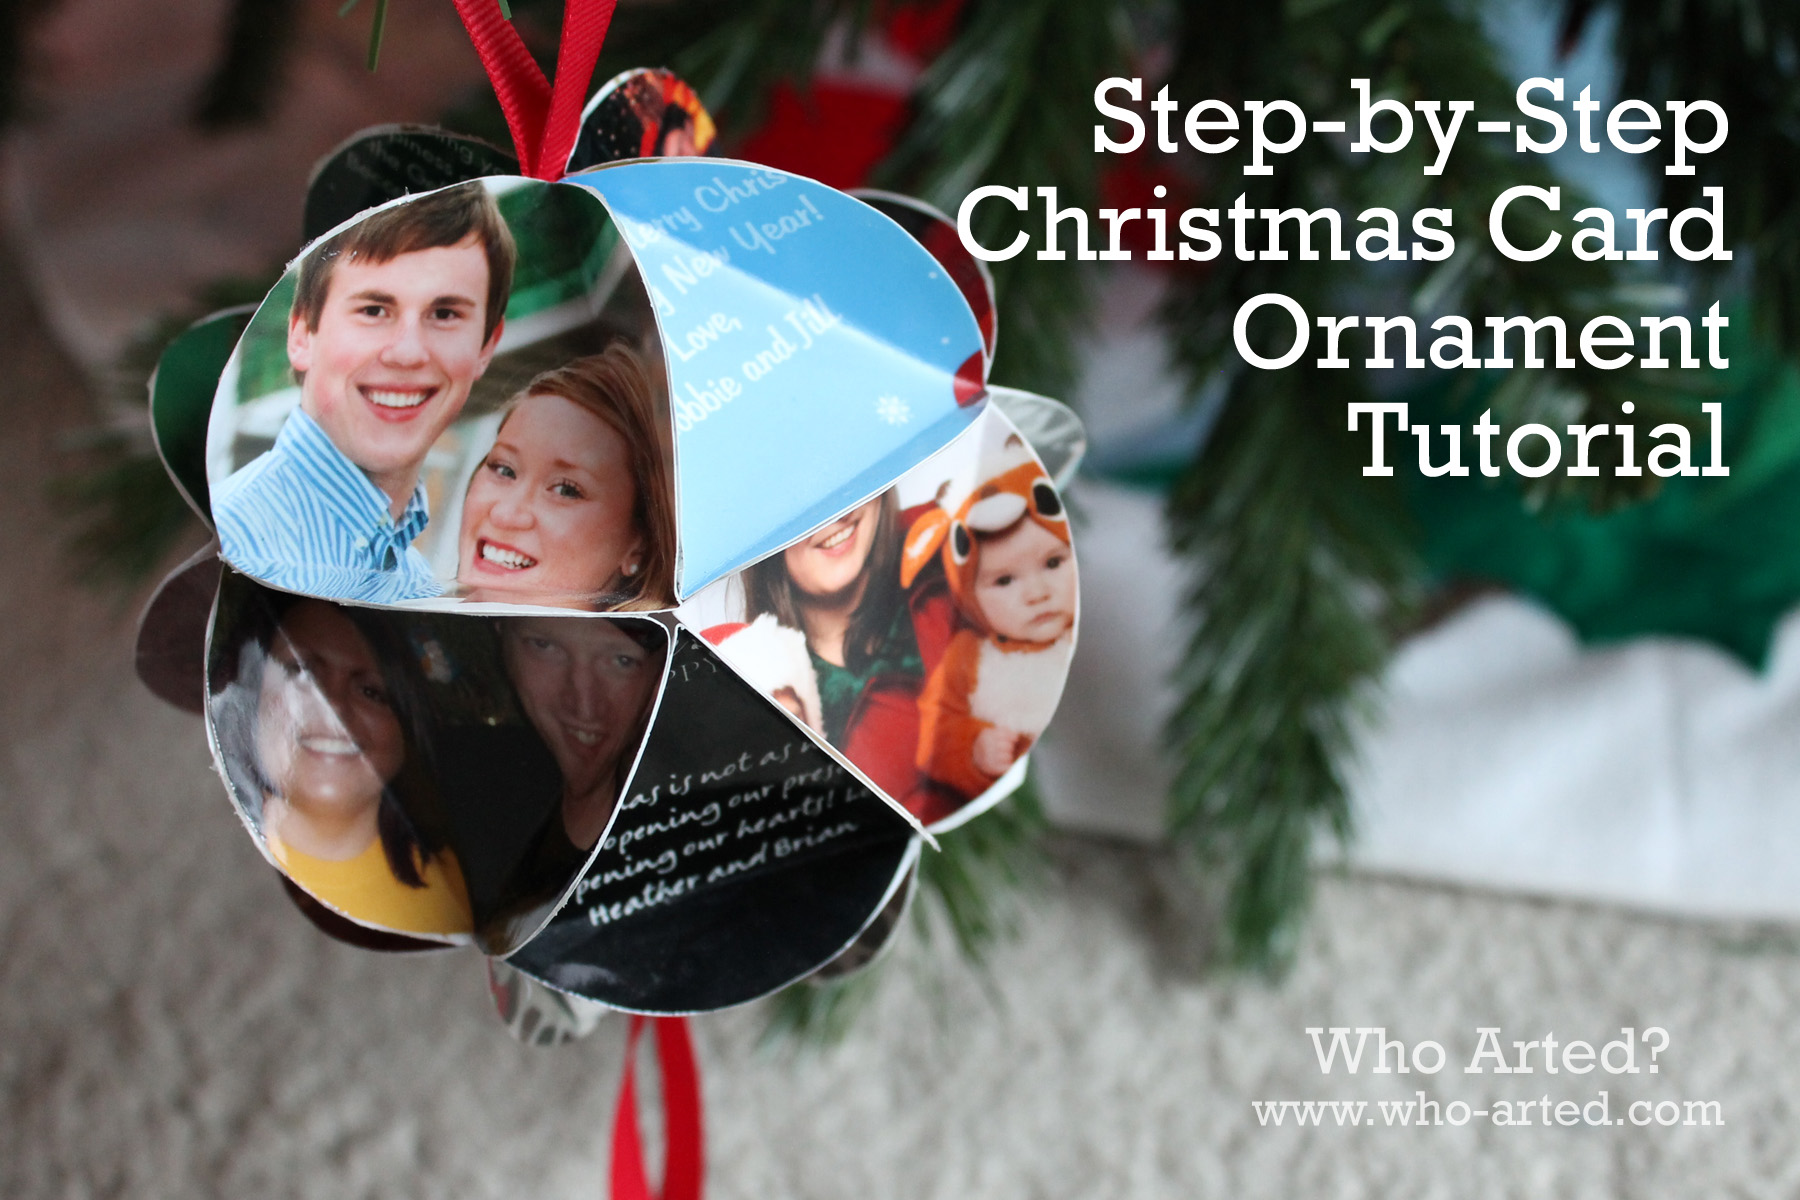 Christmas Card Ornament: Step-by-Step Instructions - Who Arted?